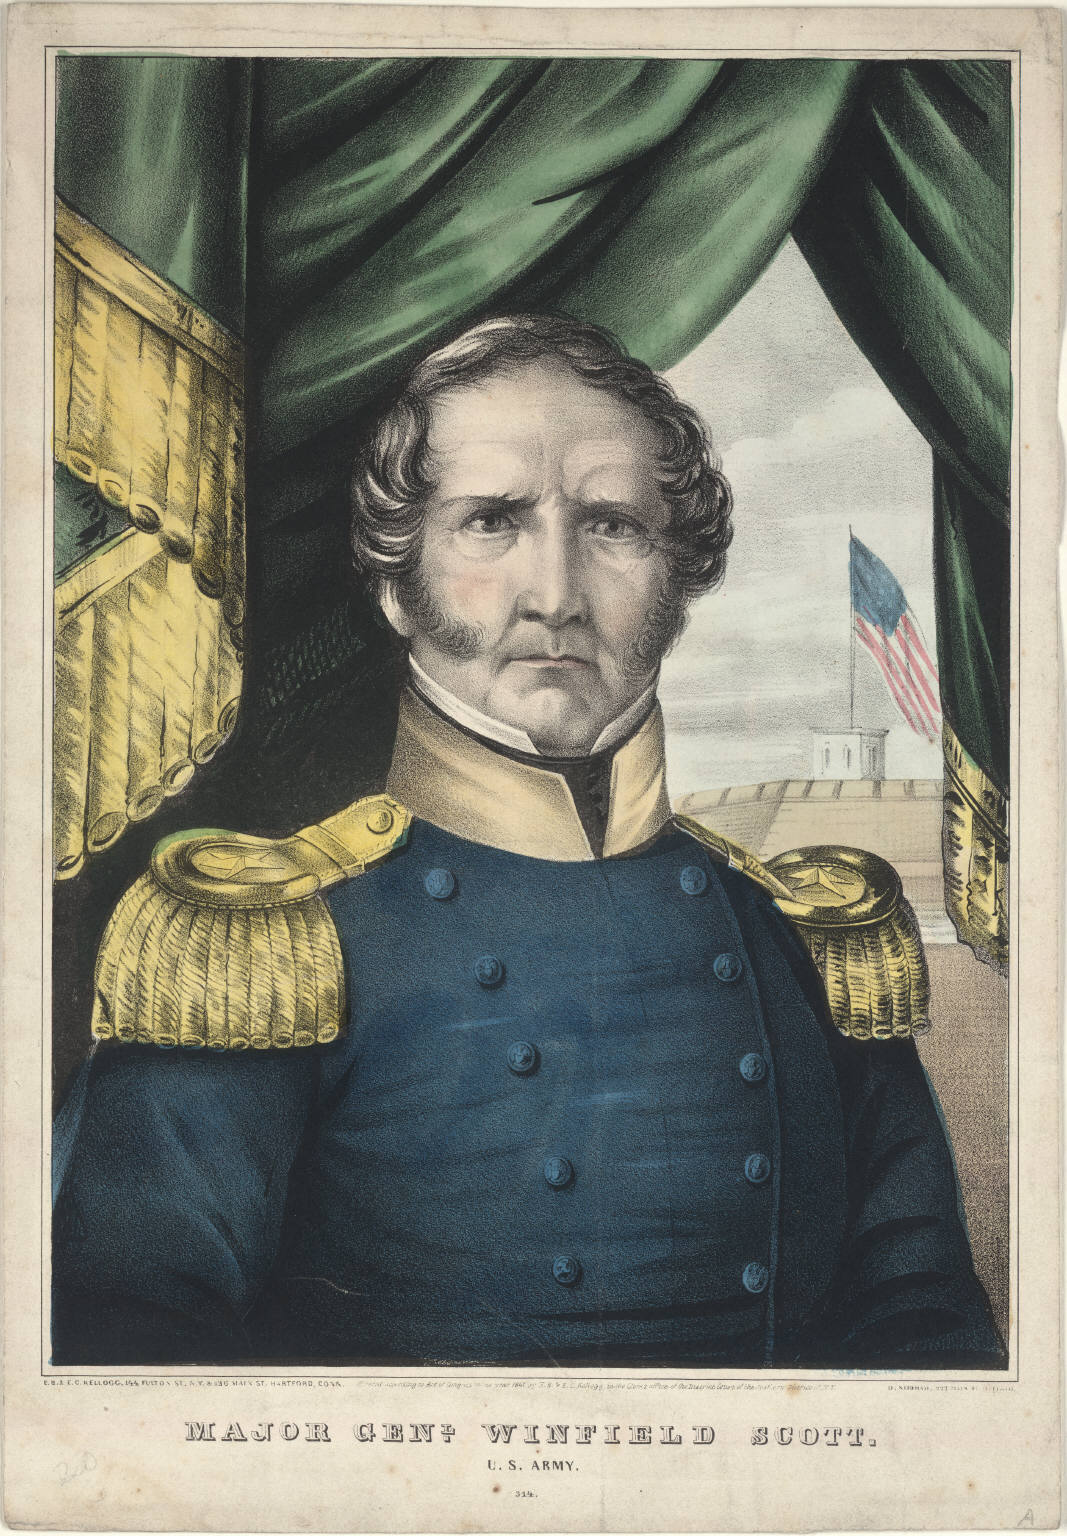 A lithograph of Major General Winfield Scott from 1847.